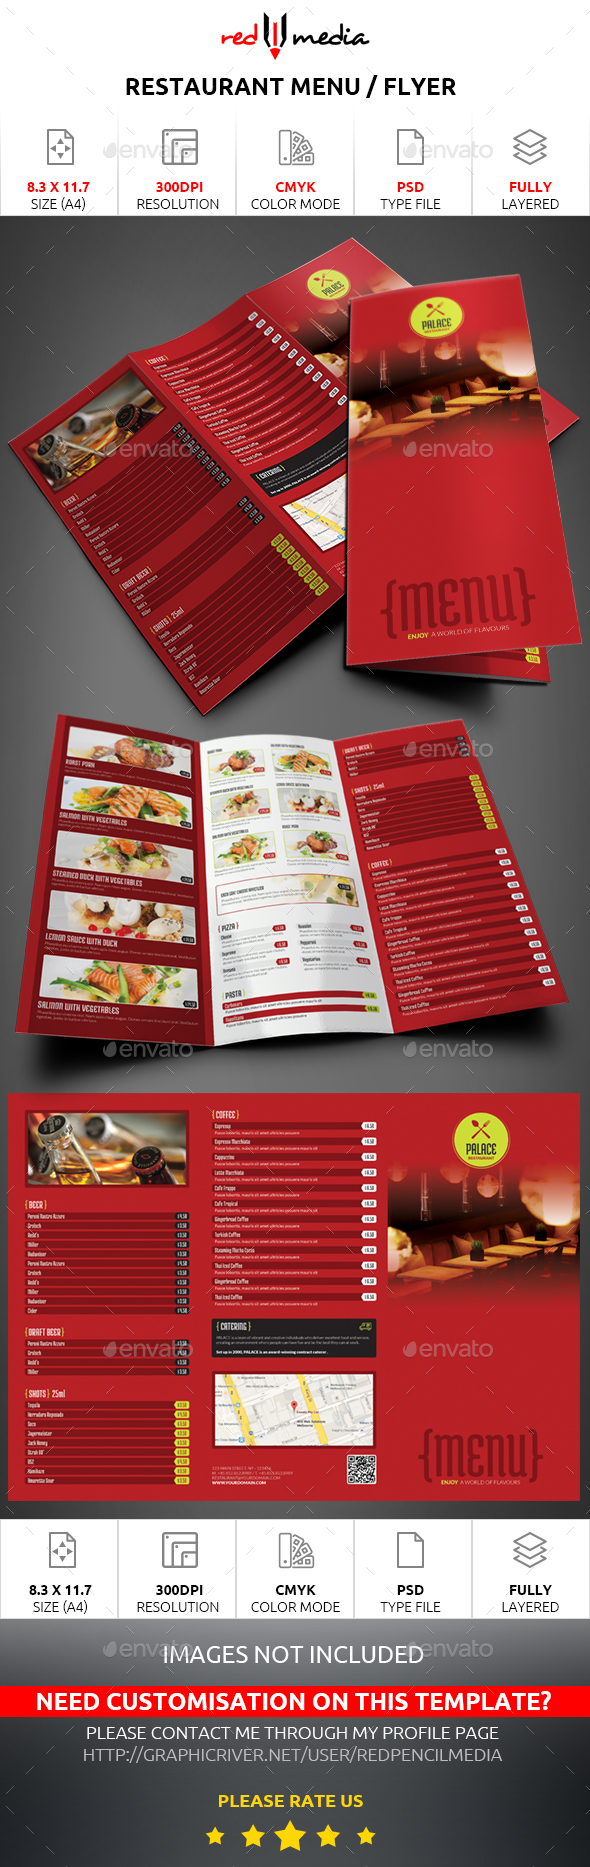 Restaurant Trifold Menu / Flyer - Restaurant Flyers